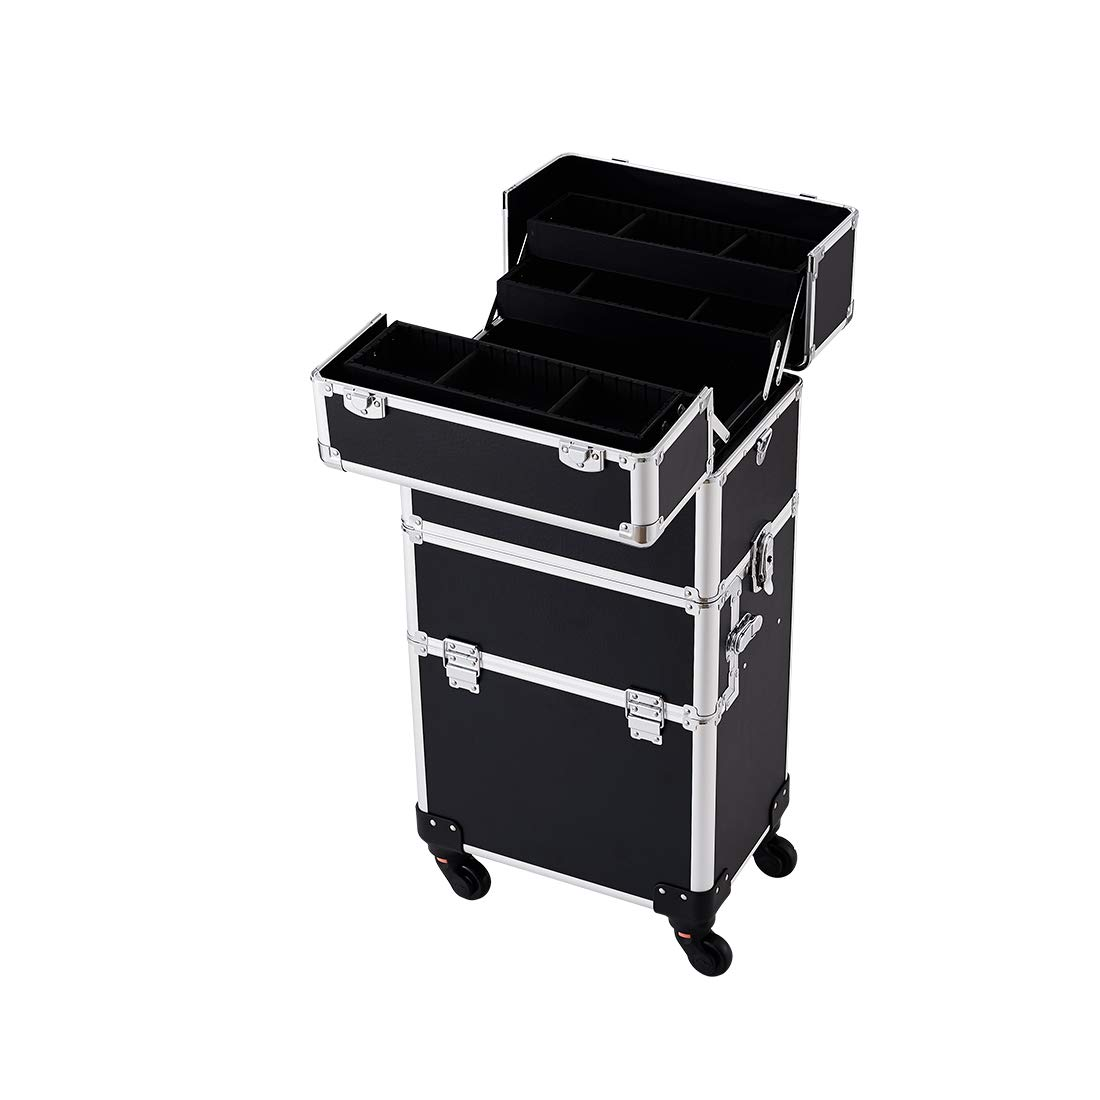 Makeup Case - 3 In 1 Aluminum Professional Rolling Cosmetics Storage Organizer With Locks and Folding Trays Black by NHSM (Image #3)